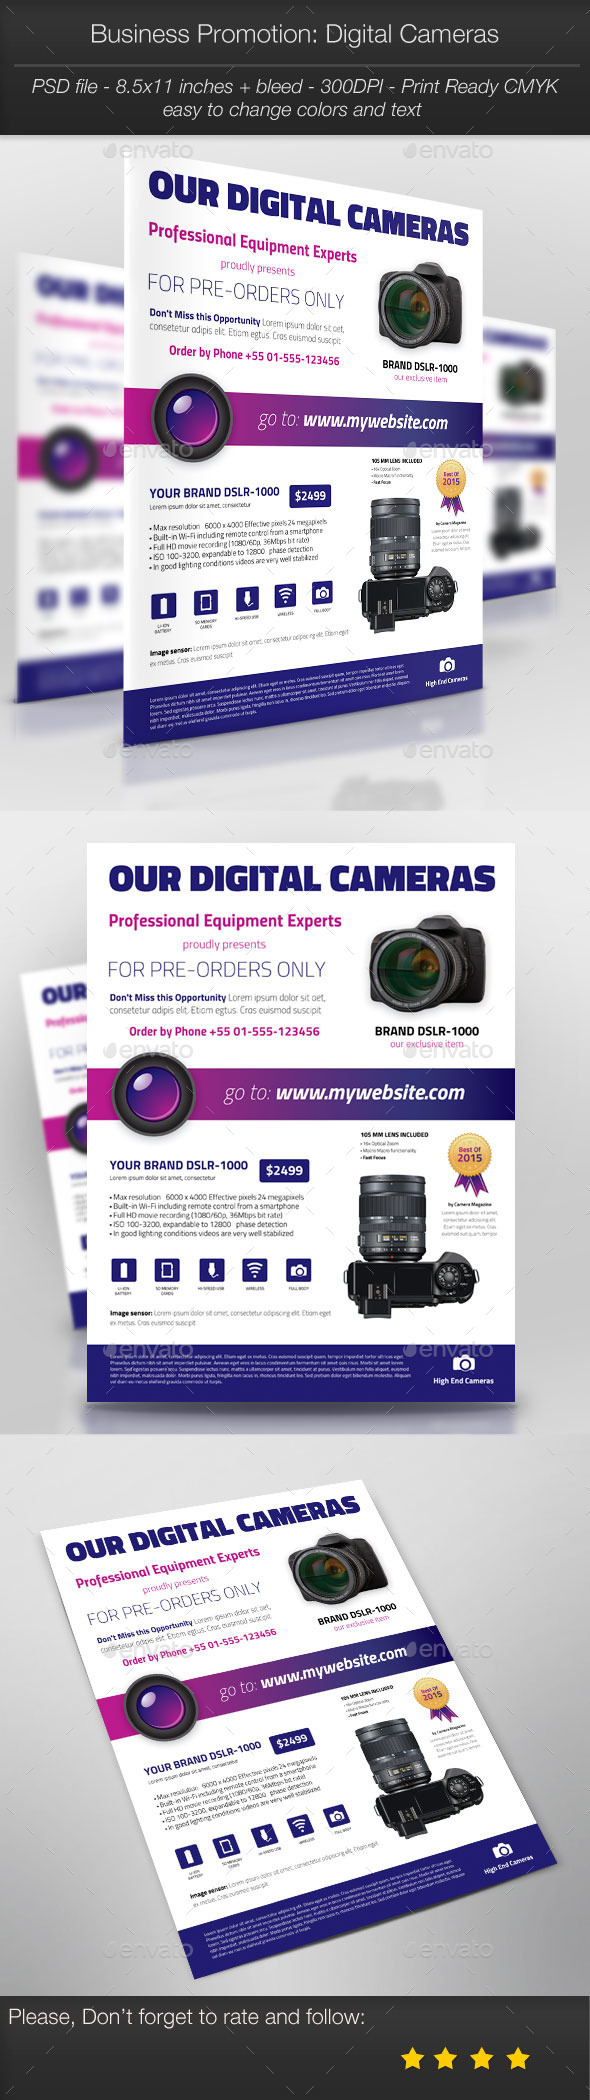 GraphicRiver Business Promotion Digital Cameras 11204455